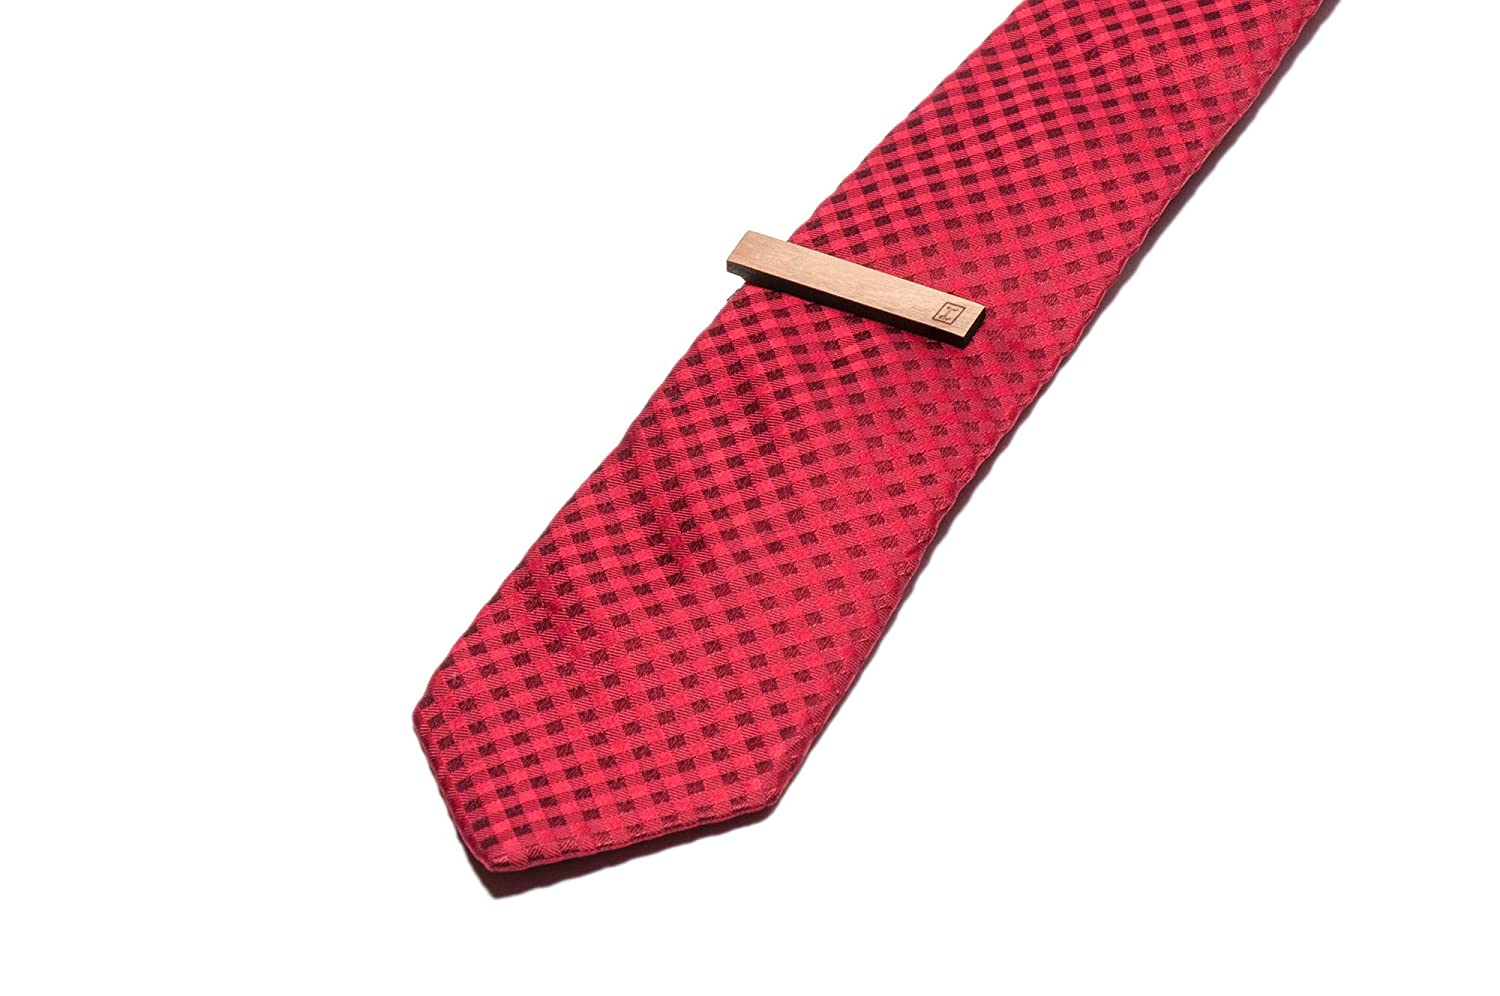 Cherry Wood Tie Bar Engraved in The USA Wooden Accessories Company Wooden Tie Clips with Laser Engraved Steel Beam Design